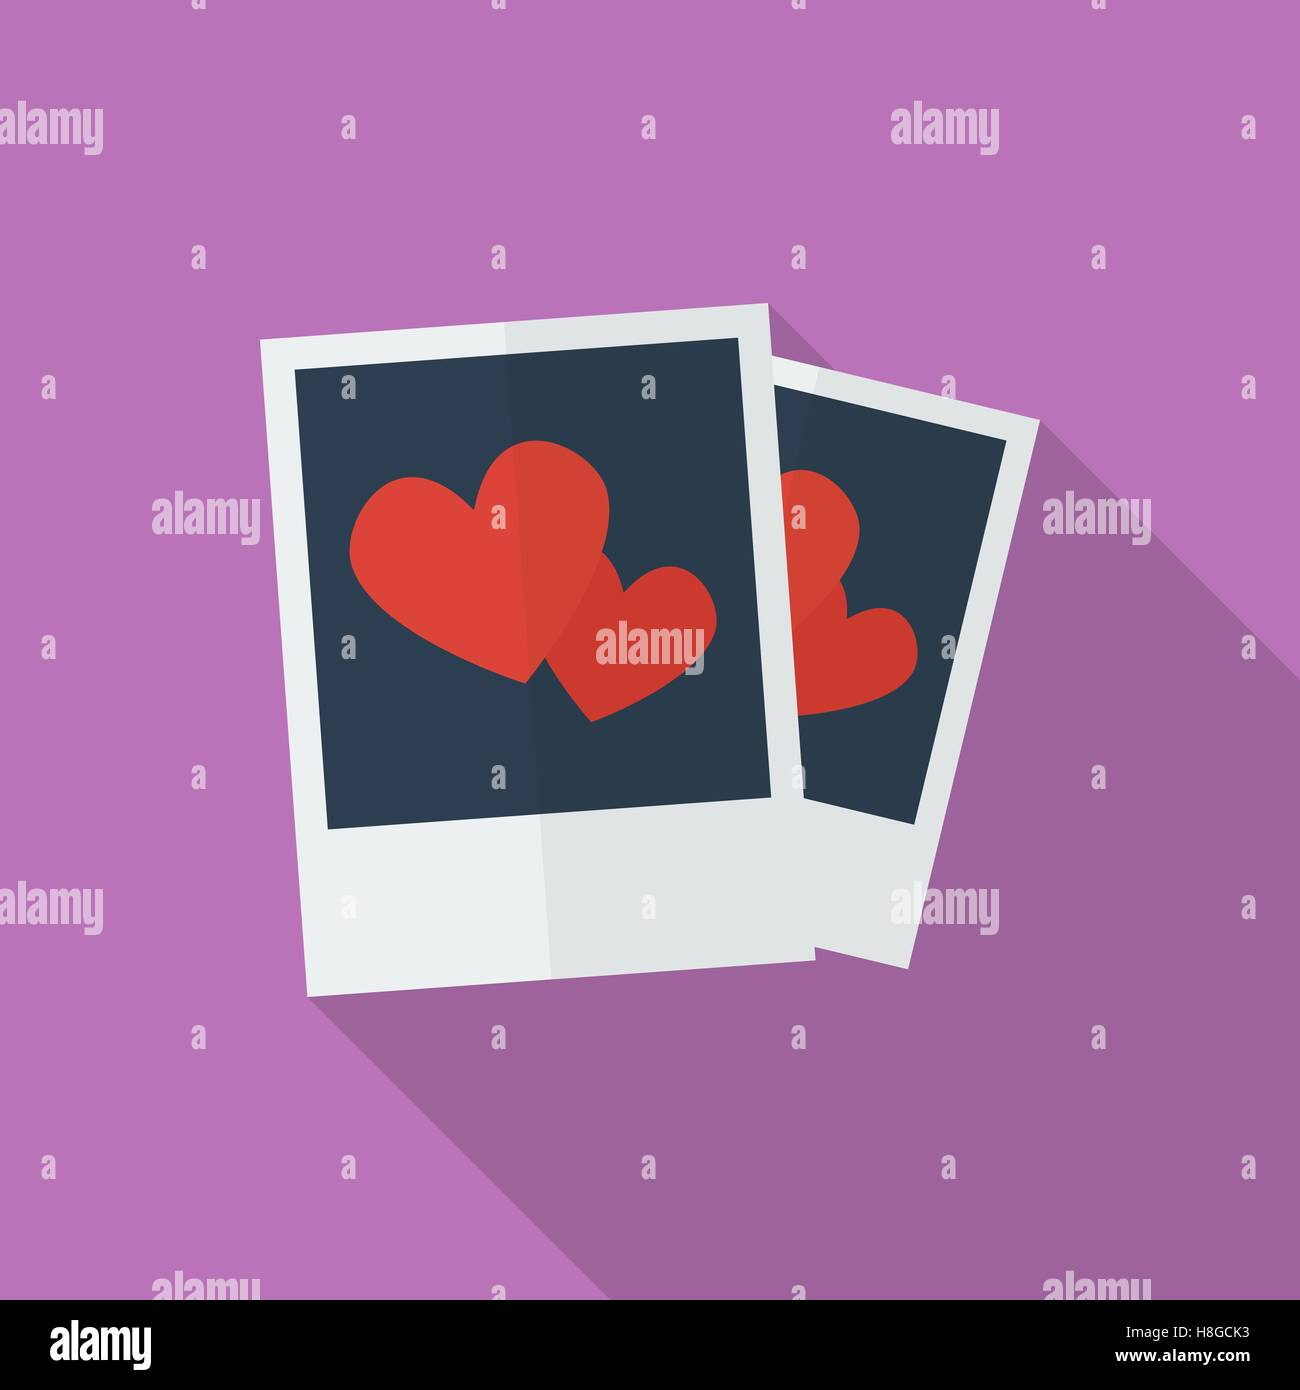 Photos with hearts. Flat style icon - Stock Vector